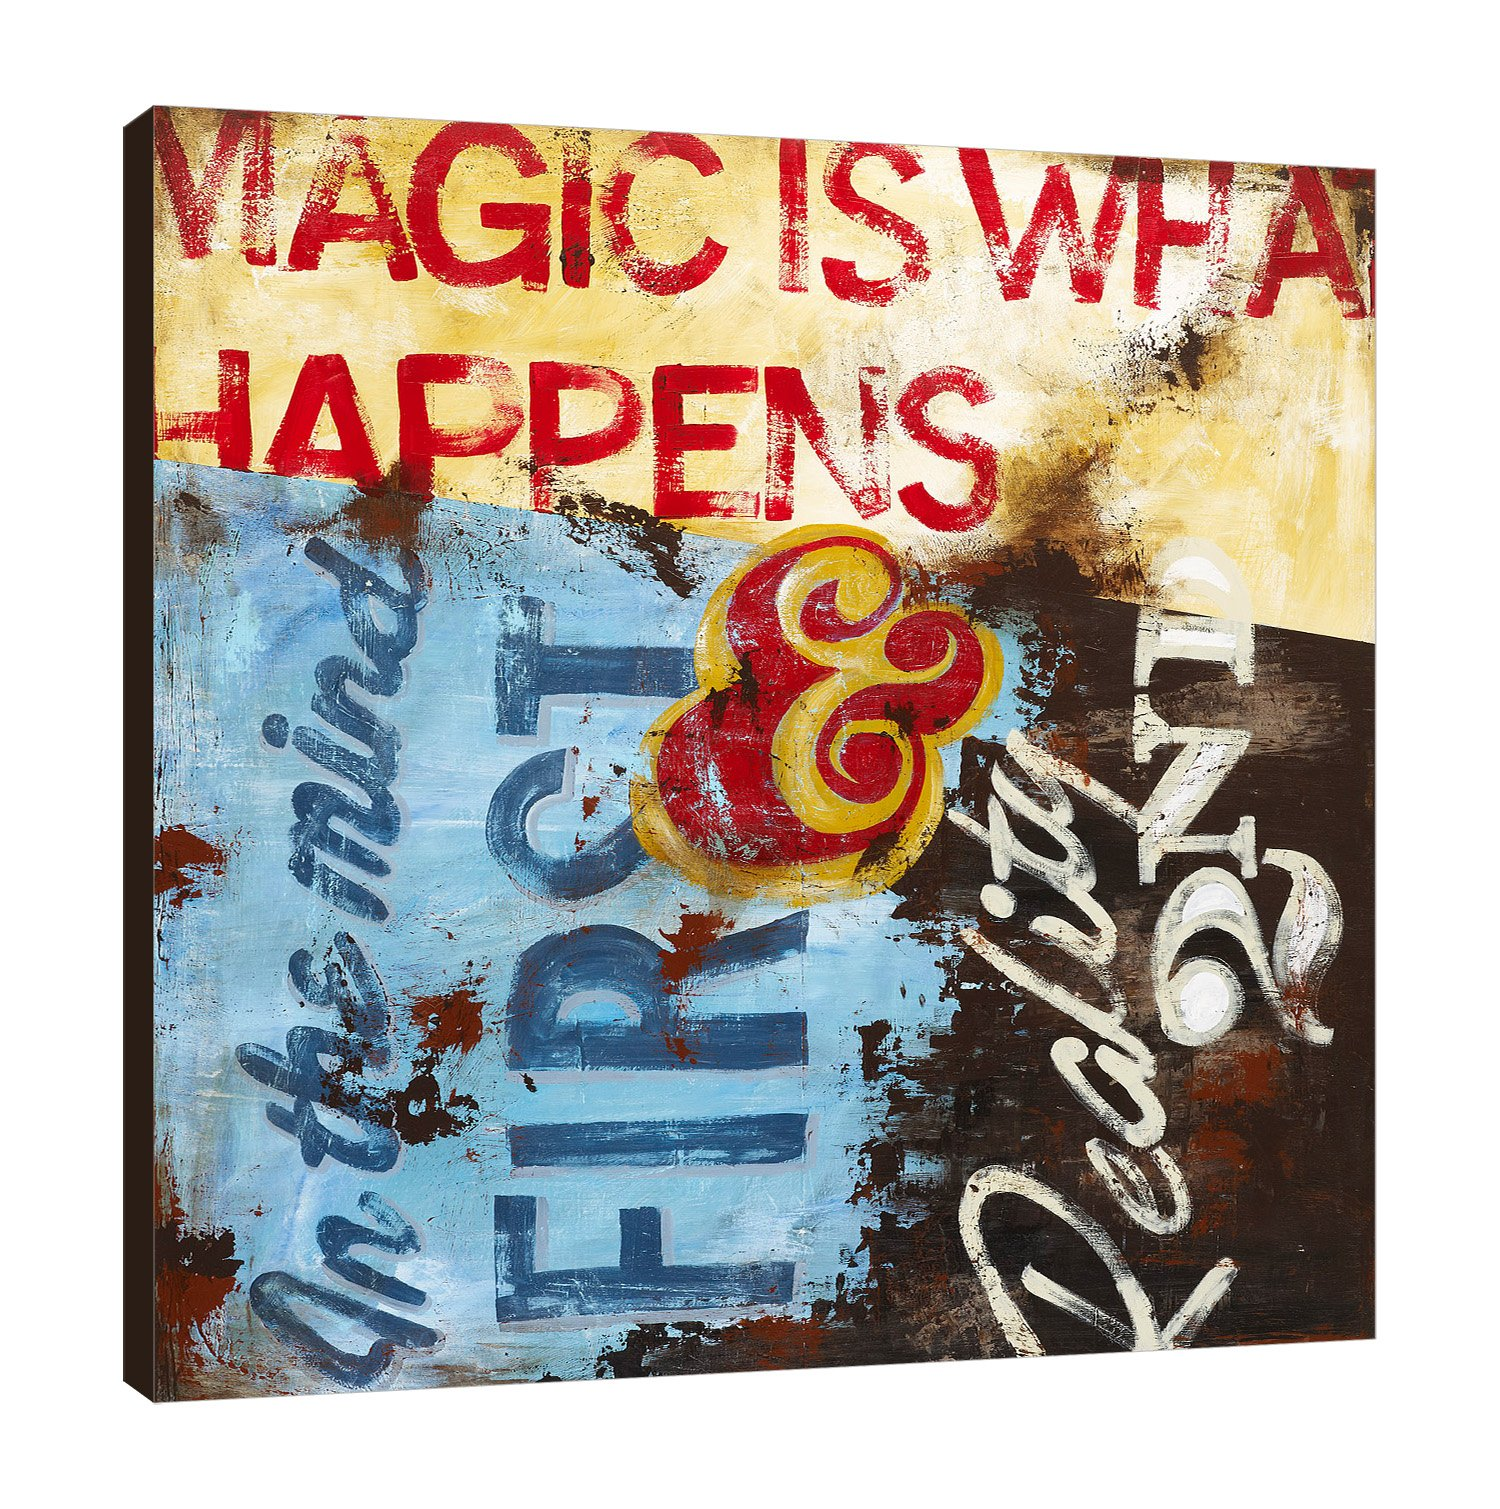 Rodney White SC0671818-RW Strategy for Everyday Sorcery Gallery Wrapped Canvas,,18x18x1.5 by Rodney White